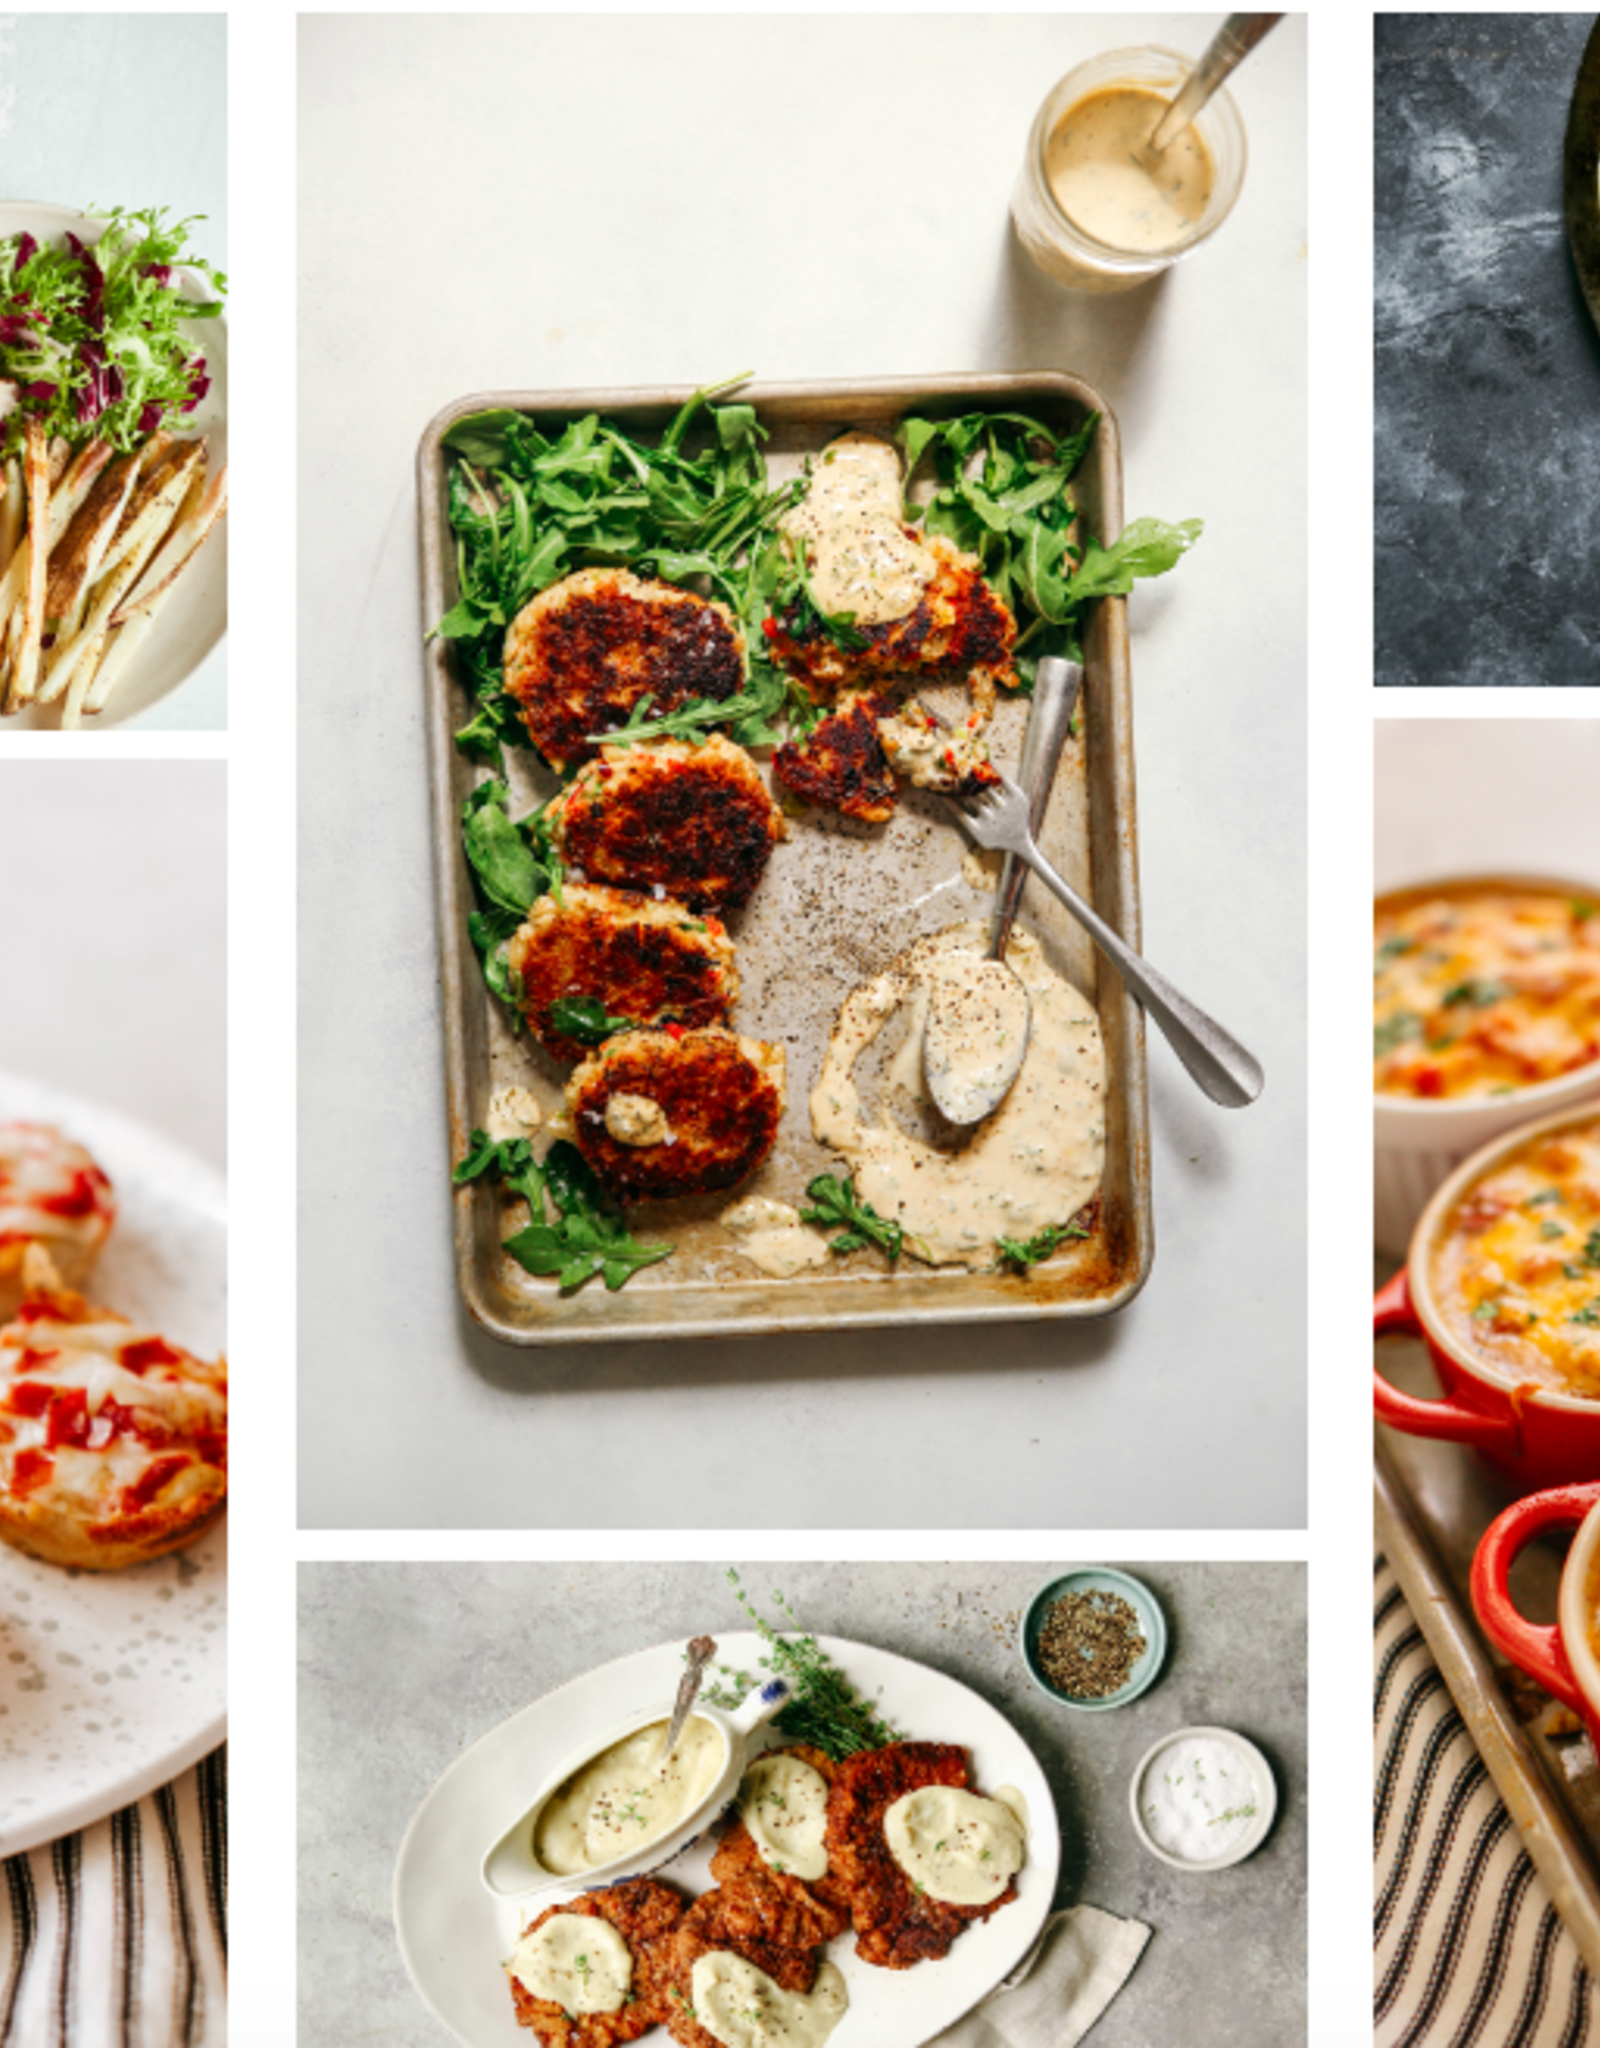 The Defined Dish: Whole30 Endorsed, Healthy and Wholesome Weeknight Recipes